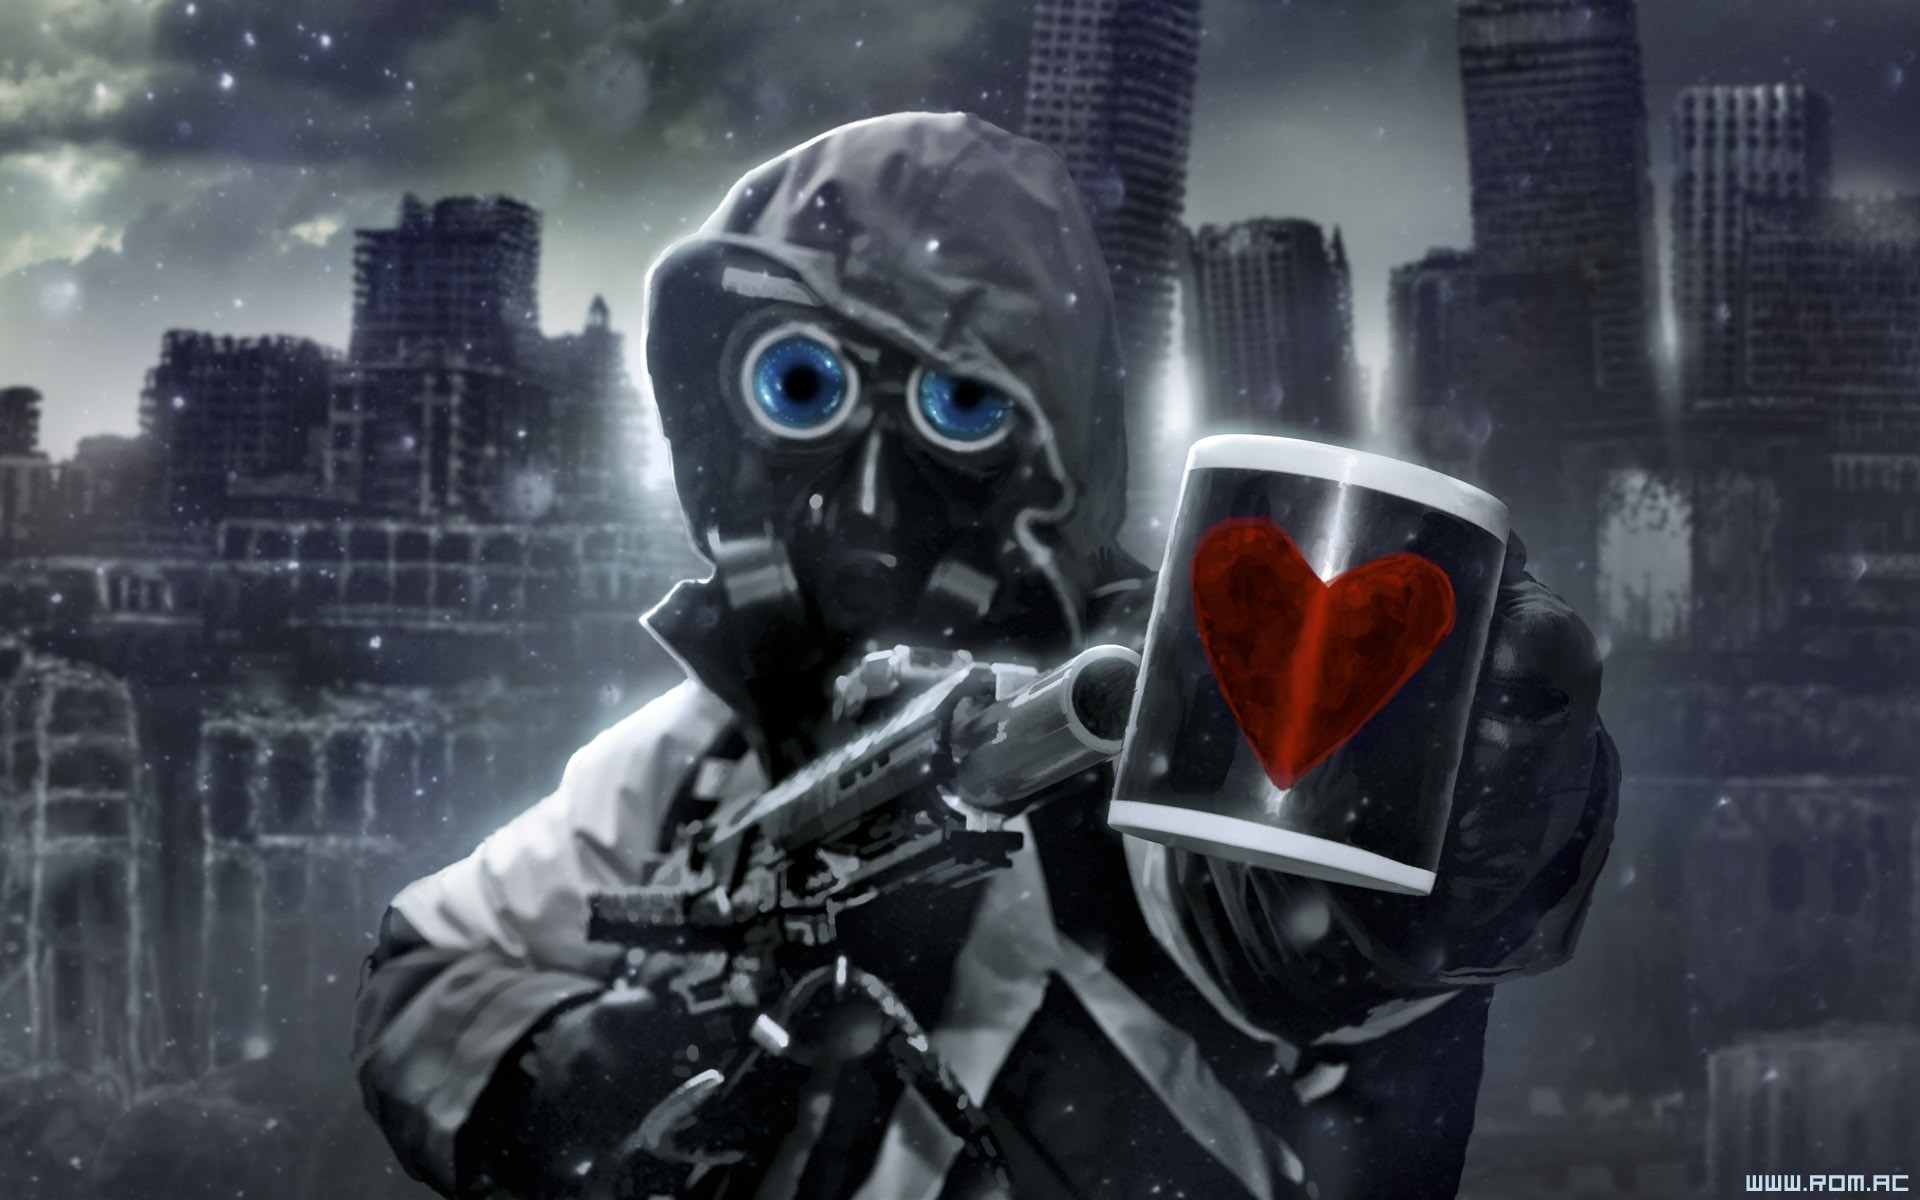 1920x1200 Fiction airbrushed romantically apocalyptic vitaly s alexius wallpaper